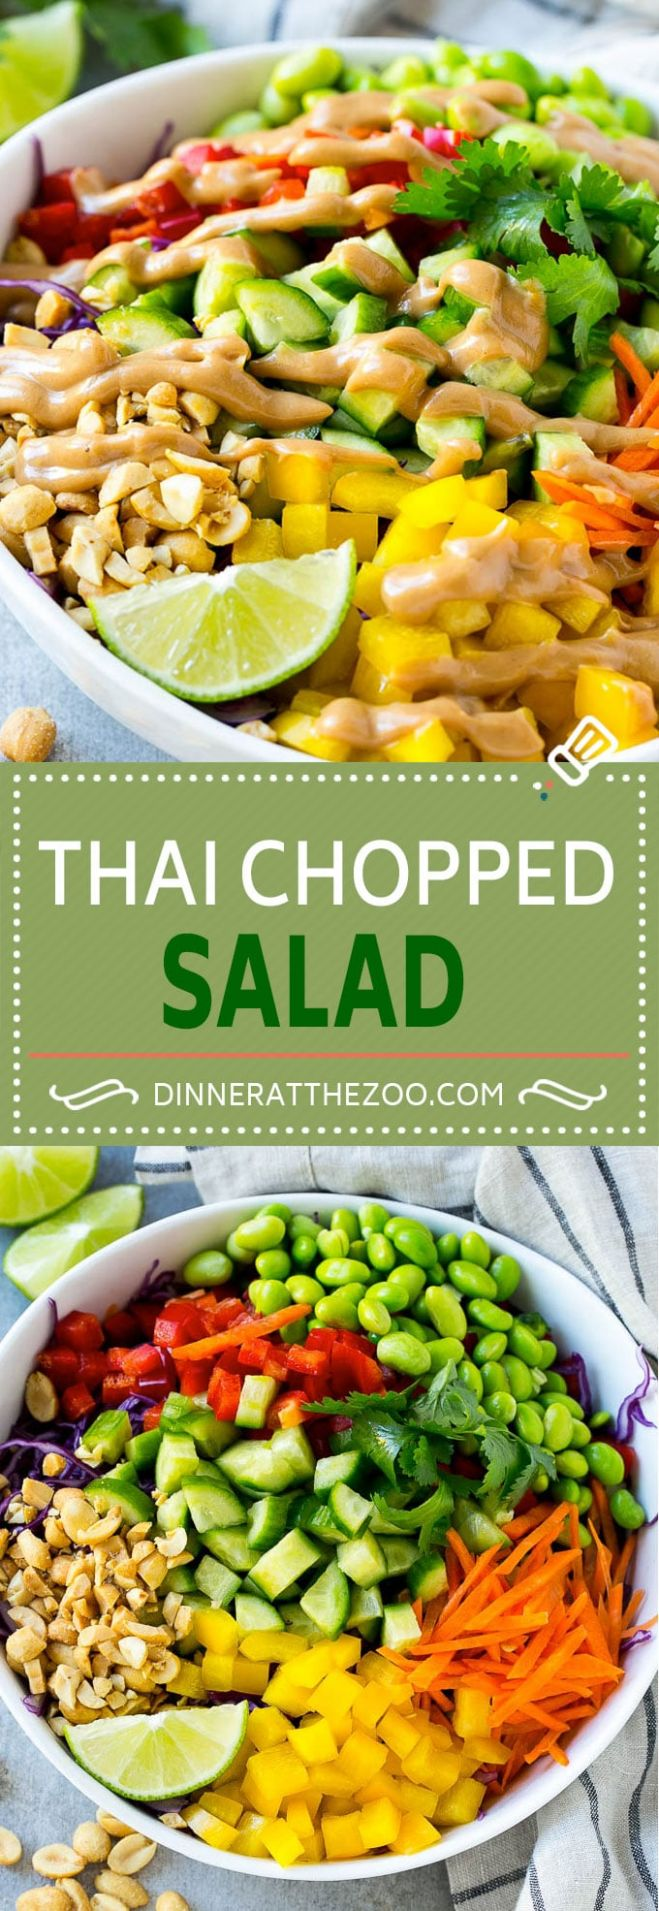 8 Healthy Salad Recipes - Dinner at the Zoo - Salad Recipes Cheap